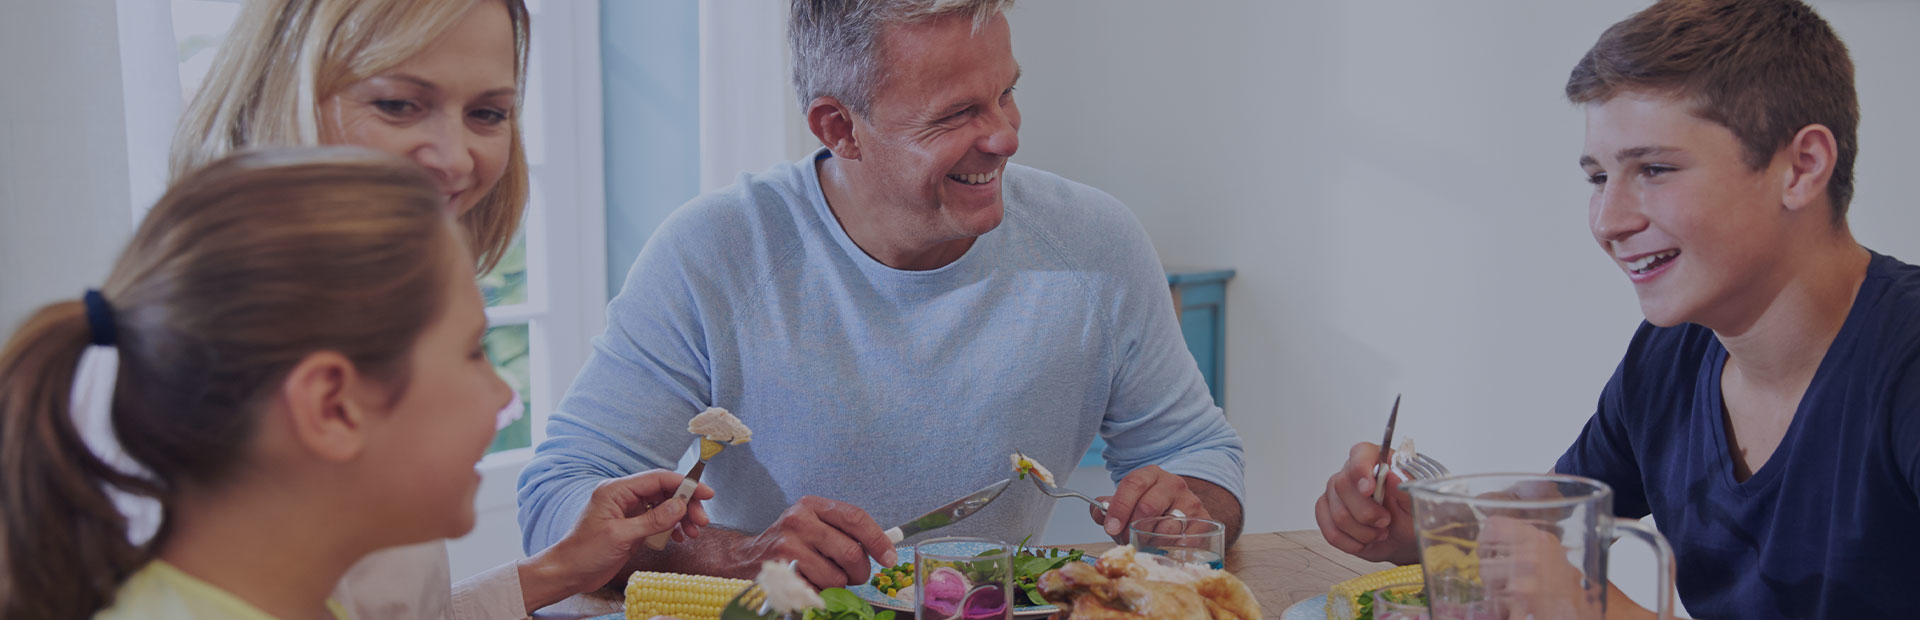 A family sit around the table eating dinner, the father has dentures but is smiling confidently and eating meat and corn on the cob, as he knows about the benefits of denture adhesive cream.